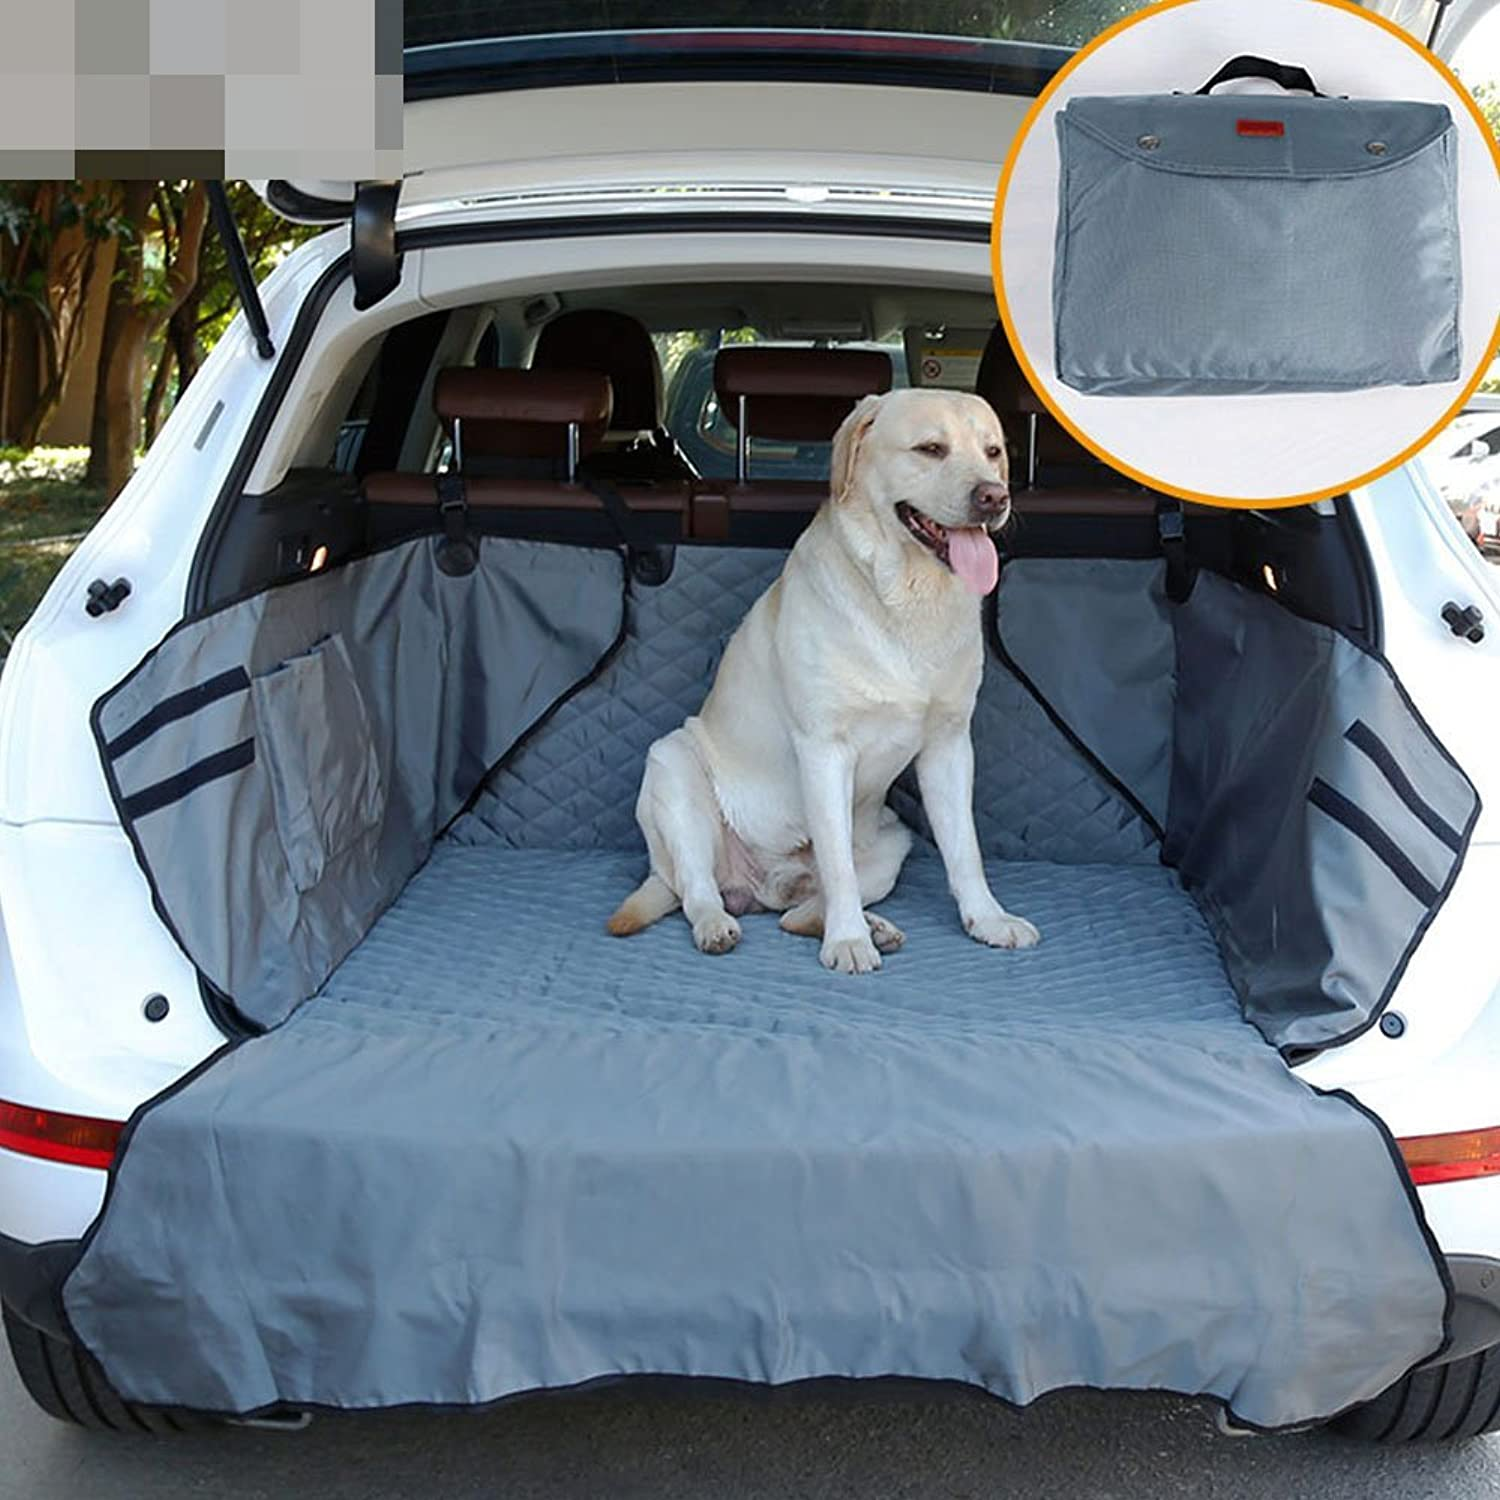 Cargo Liner Cover for SUVs and Cars, Pet Dog Car SUV Seat Cover with Pockets,Waterproof,Non Slip Backing, Extra Bumper Flap Predector,900D Nylon Oxford Fabric